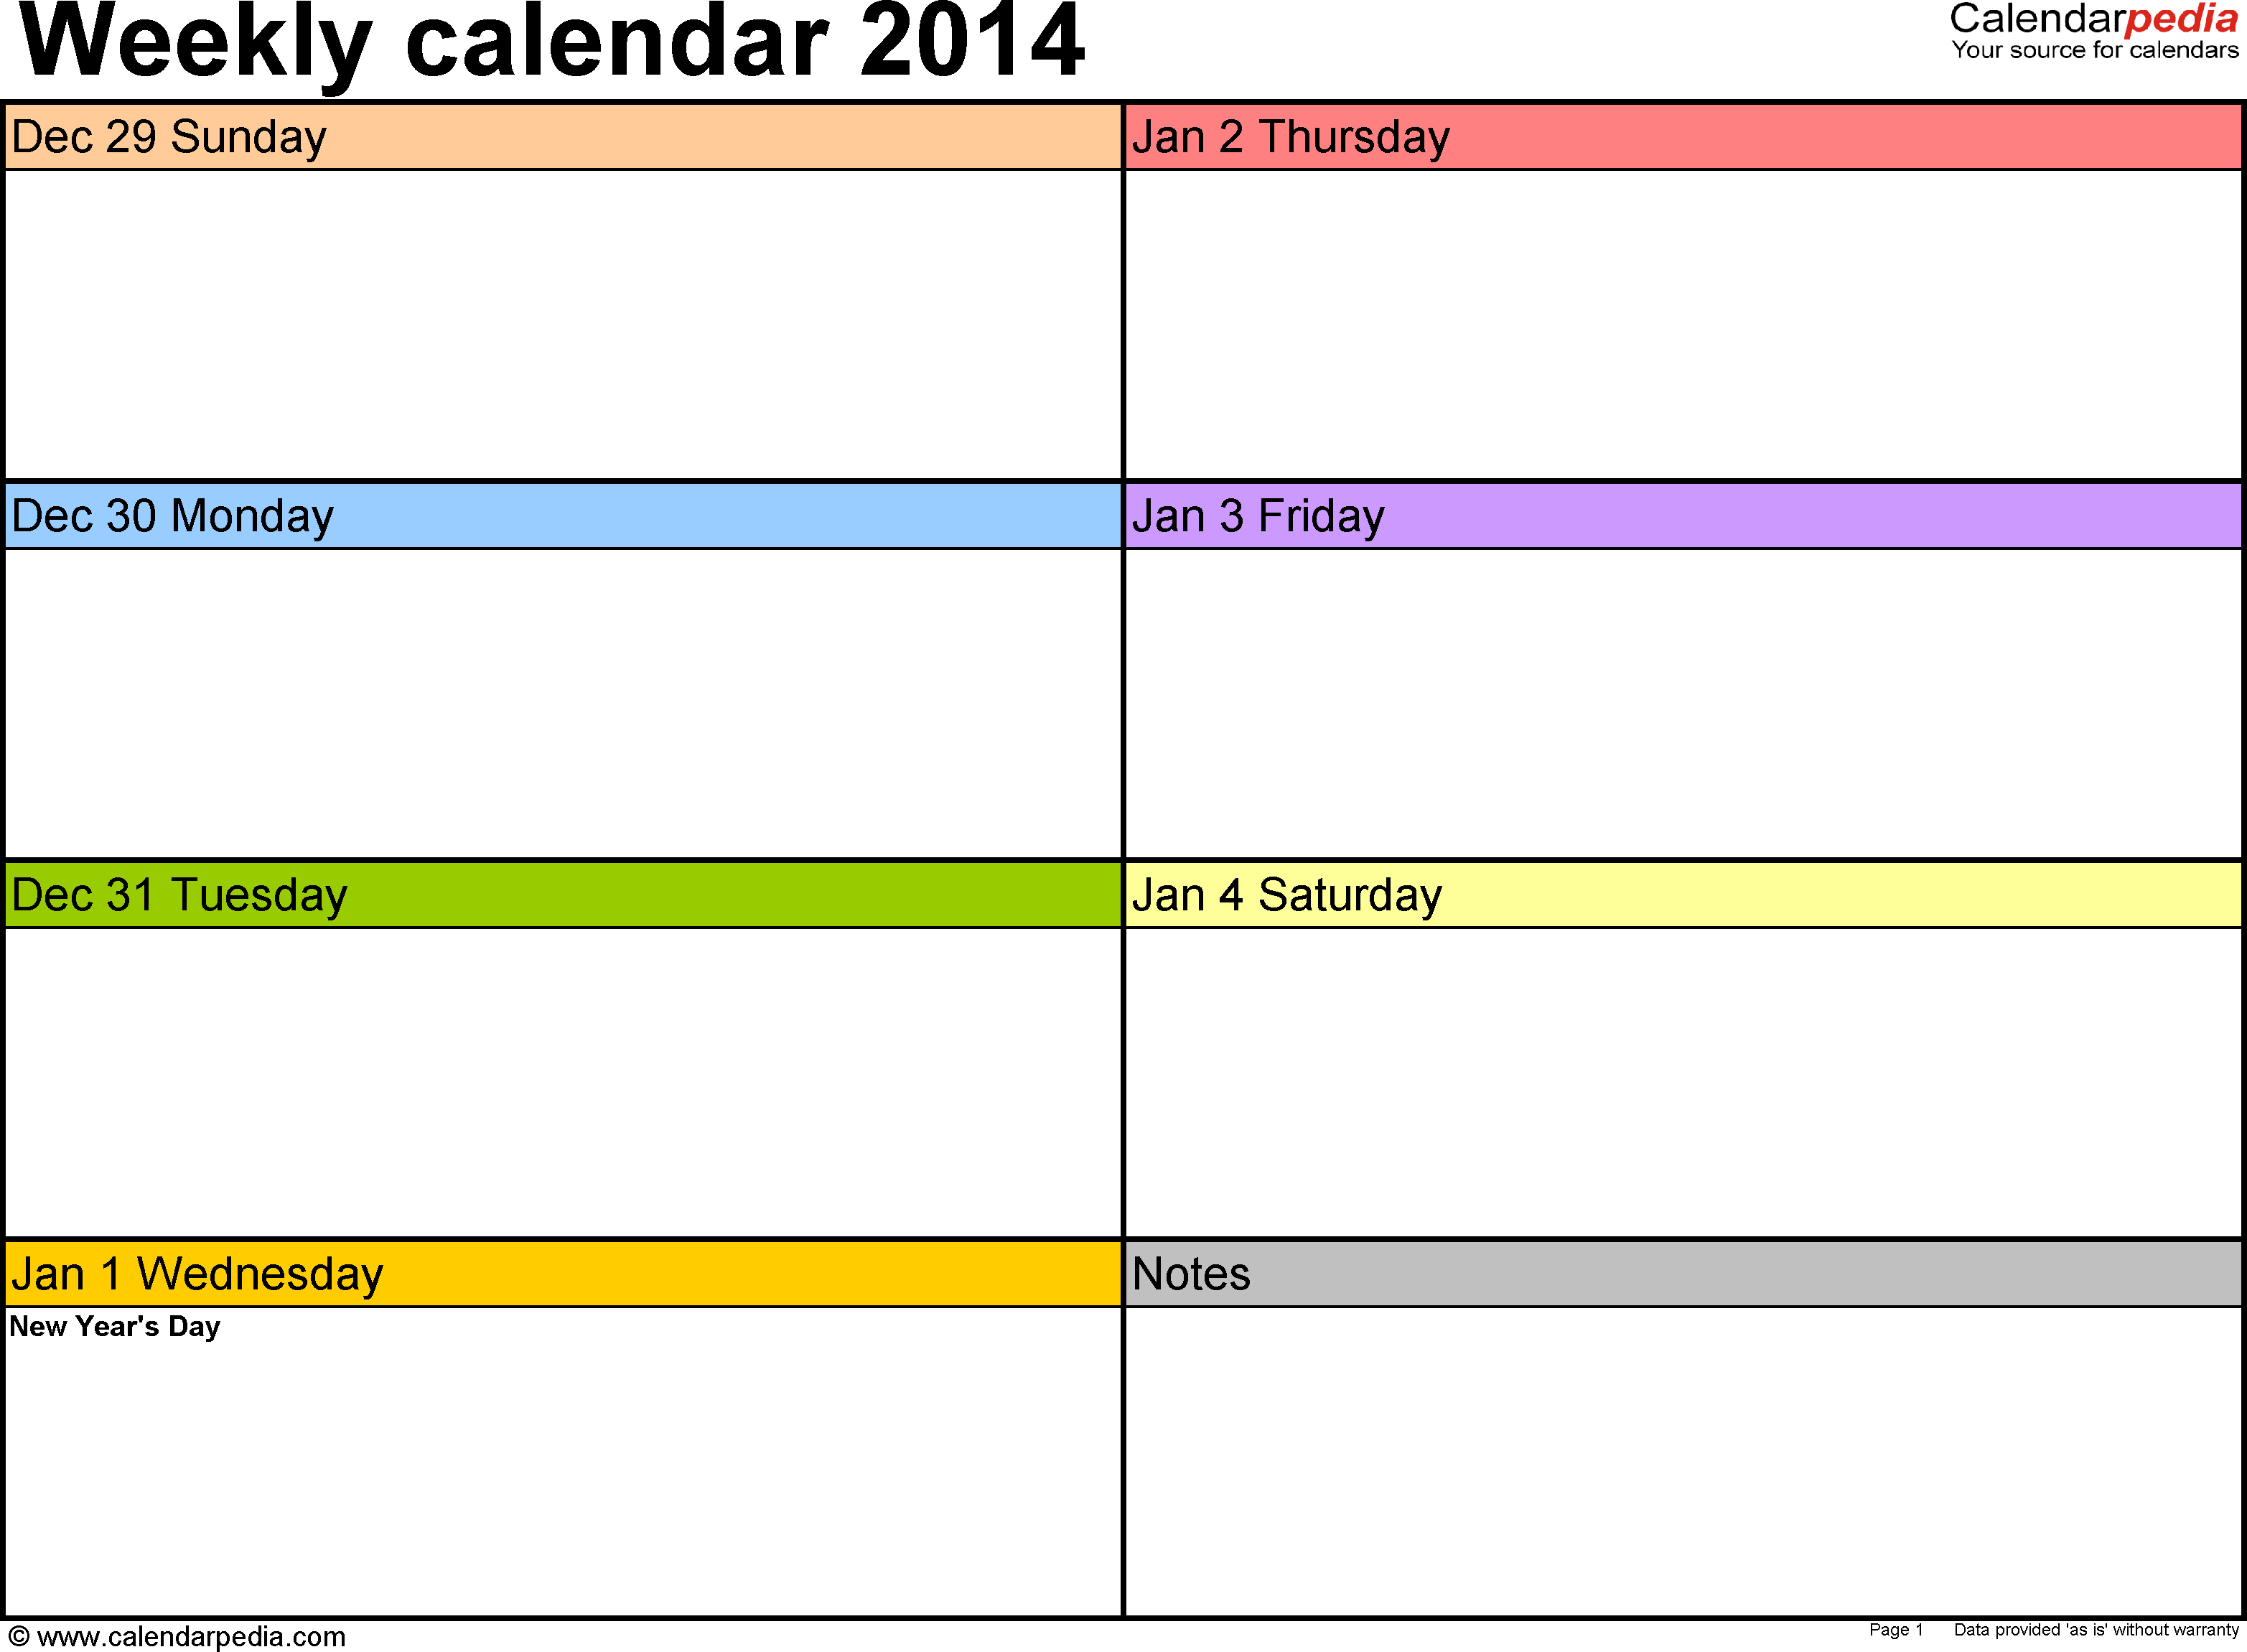 Weekly calendar 2014 for Word - 4 free printable templates